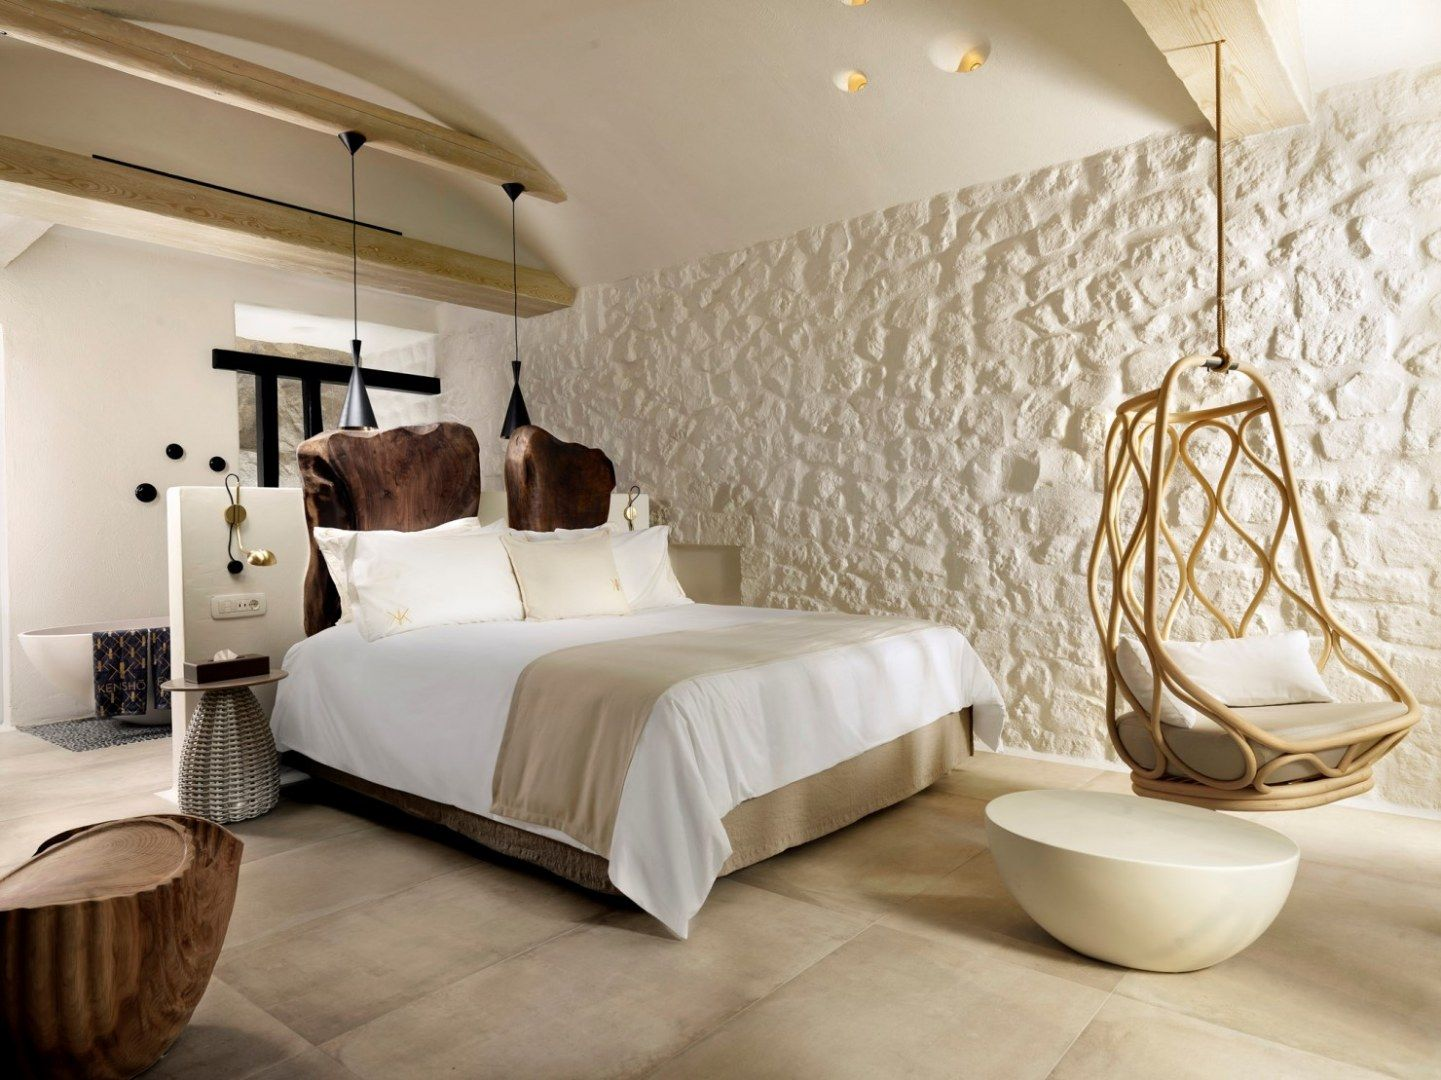 Boutique Hotel Room Design